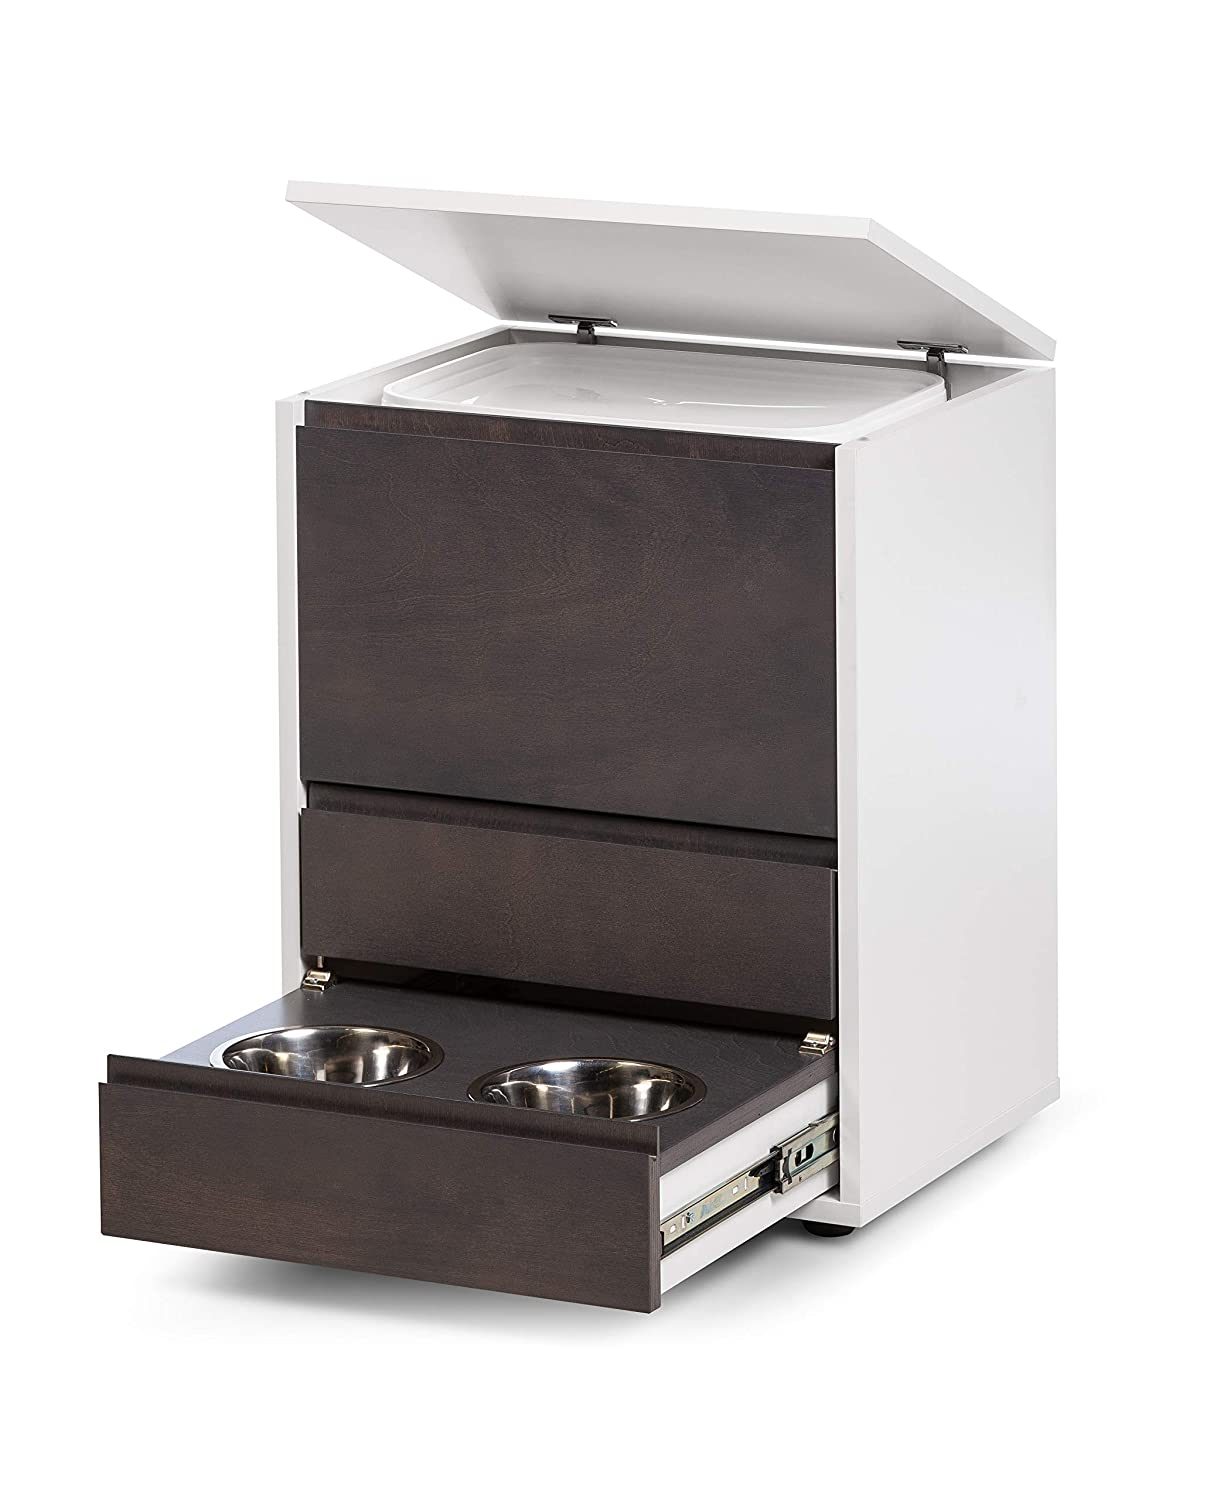 Alusta Furniture Dog Supplies Storage and Feeder   Raised Double Bowl Water and Food Station Elevated Bowls and Food Container Included   Fully Assembled